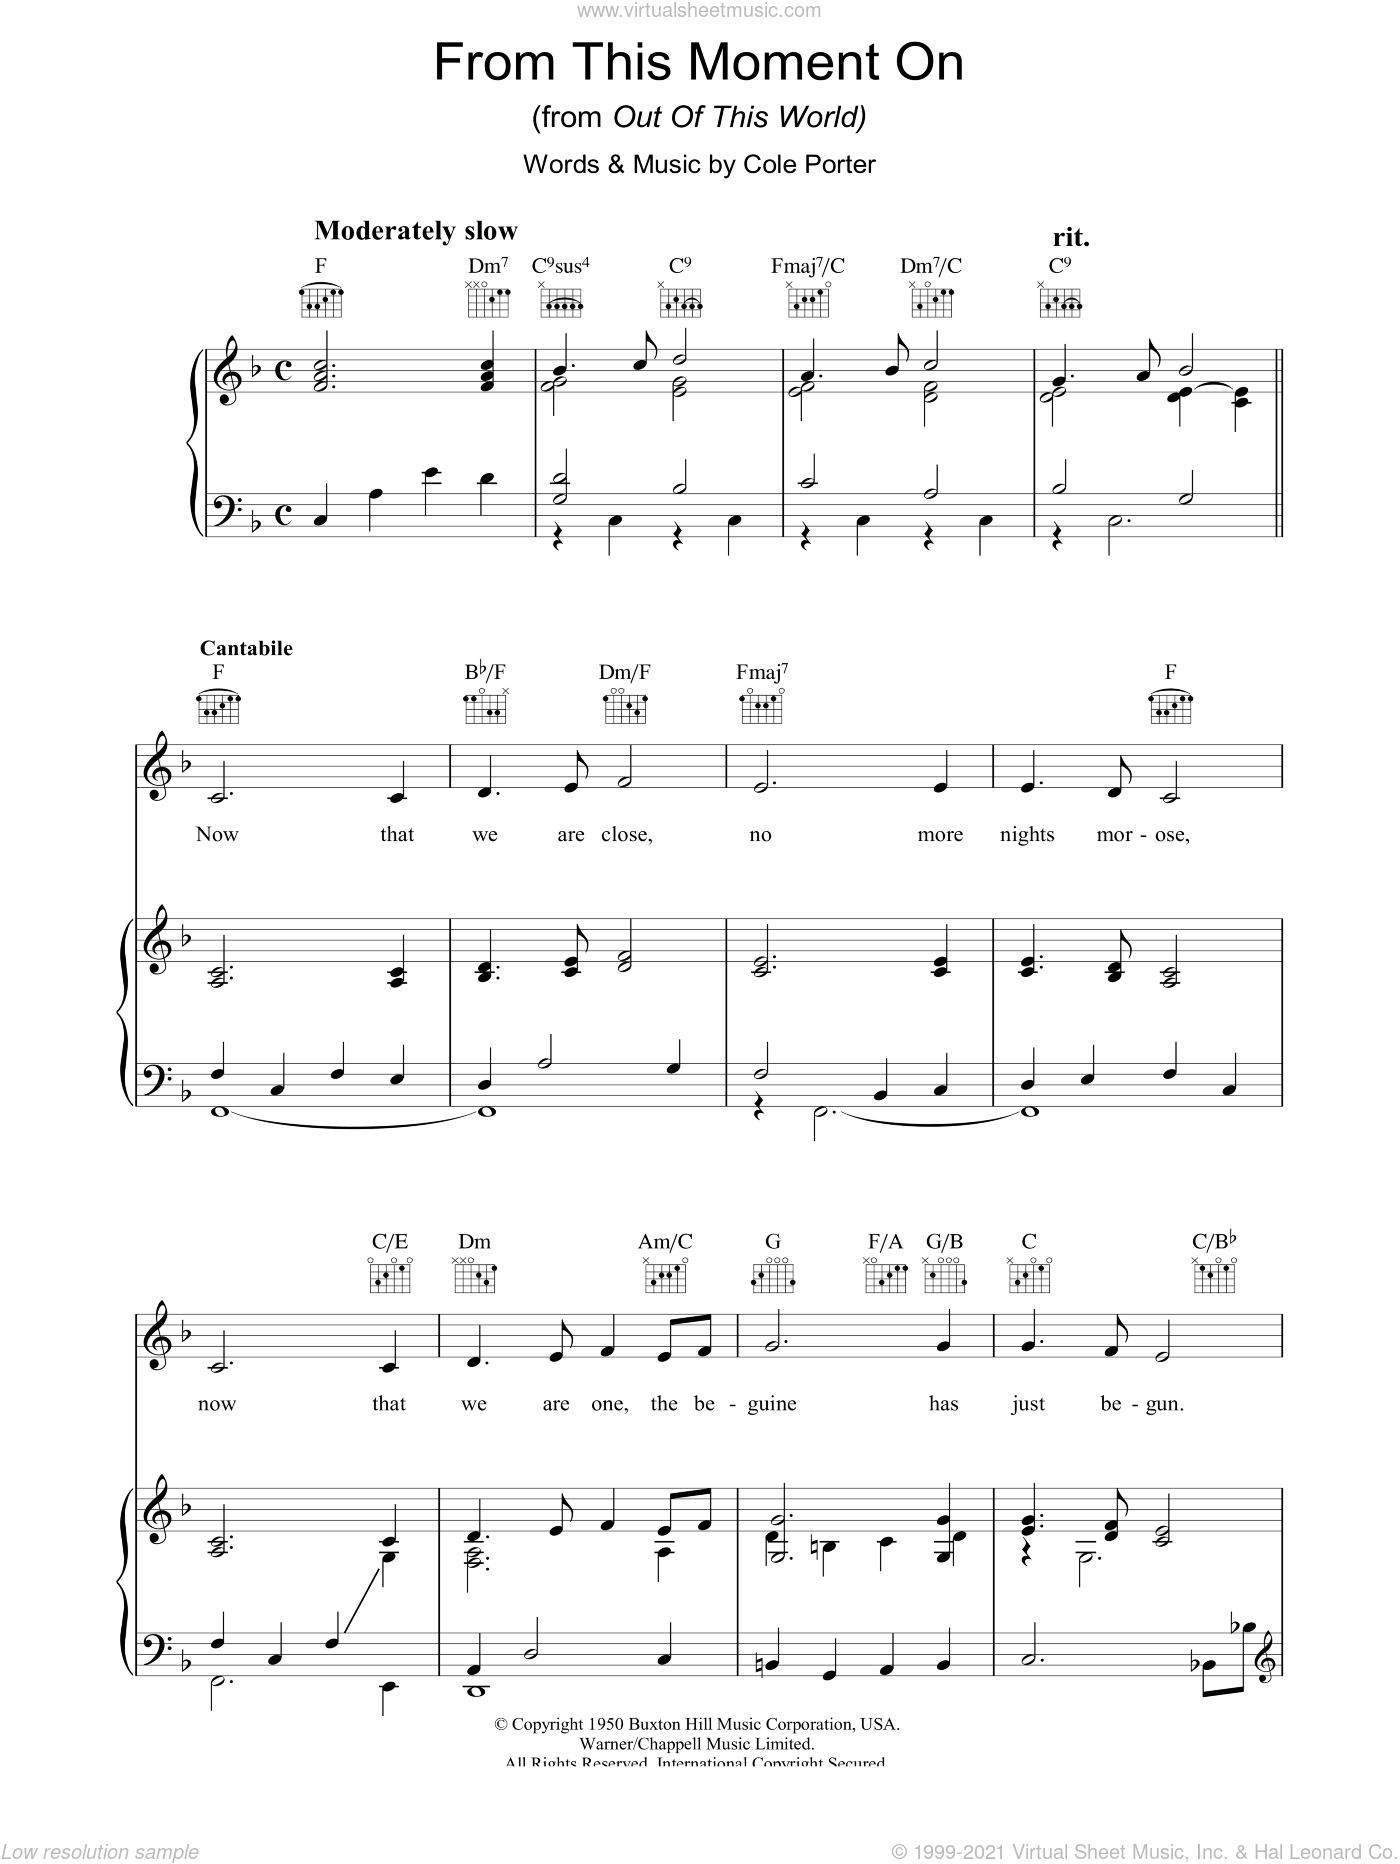 From This Moment On (from Kiss Me, Kate) sheet music for voice, piano or guitar by Cole Porter, intermediate skill level